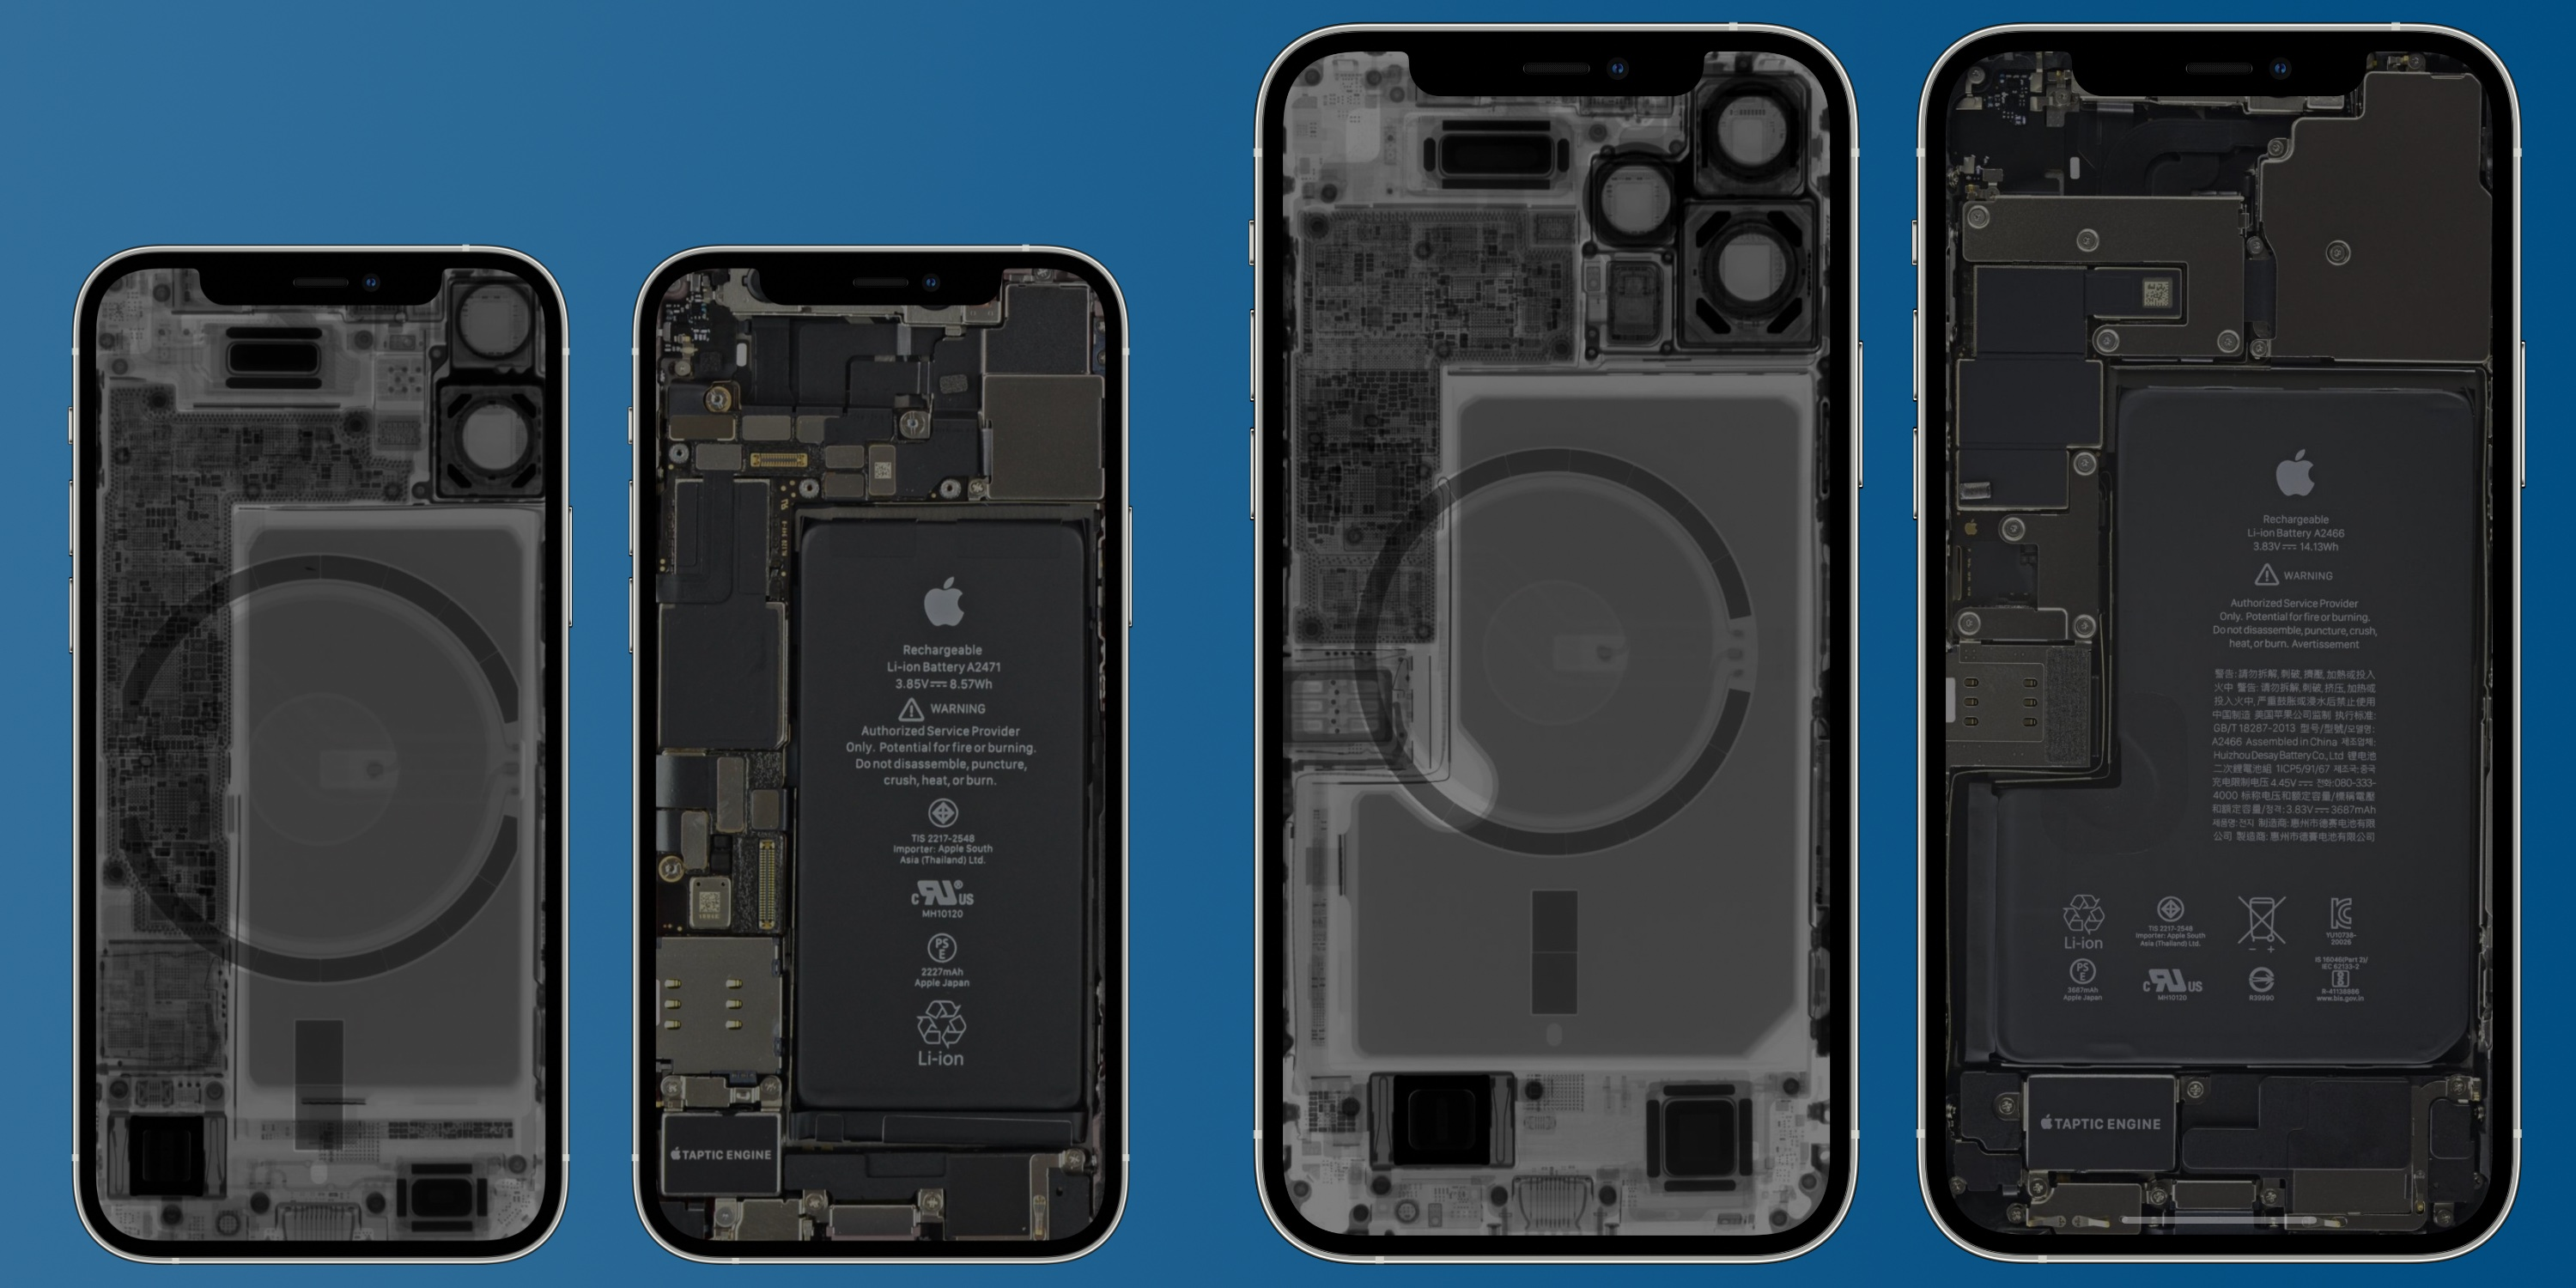 An X-ray image showing the MagSafe magnets in the iPhone 12 mini and iPhone 12 Pro Max